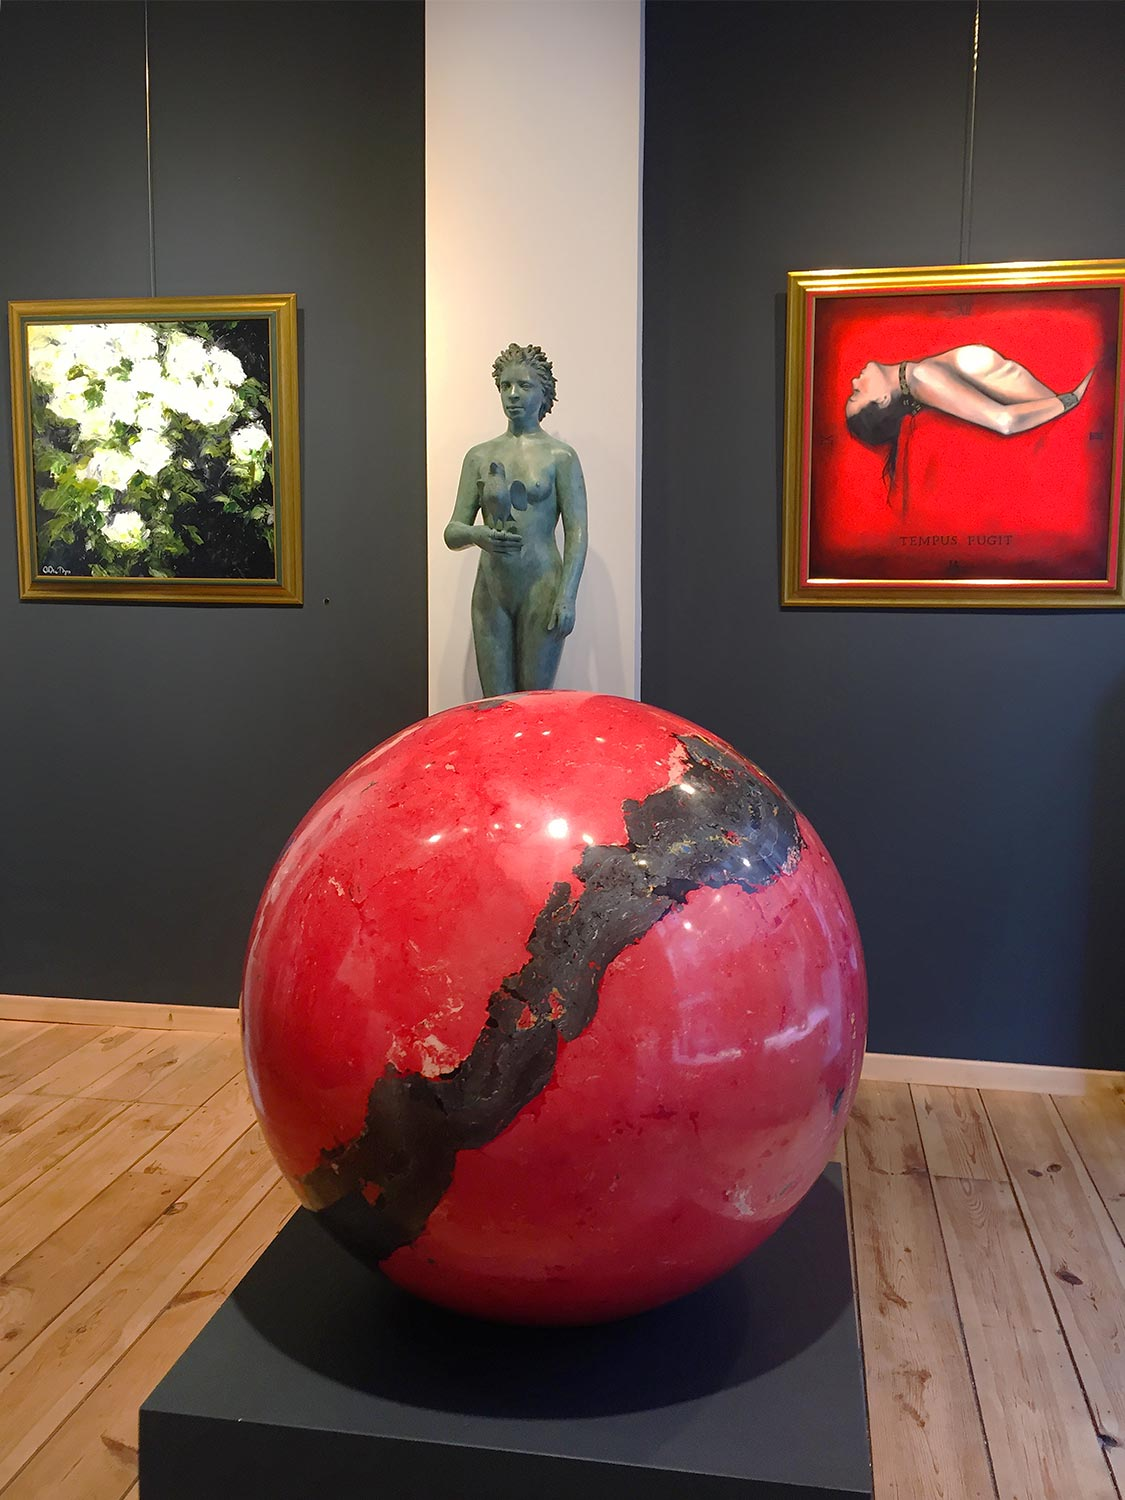 The Gallery 11